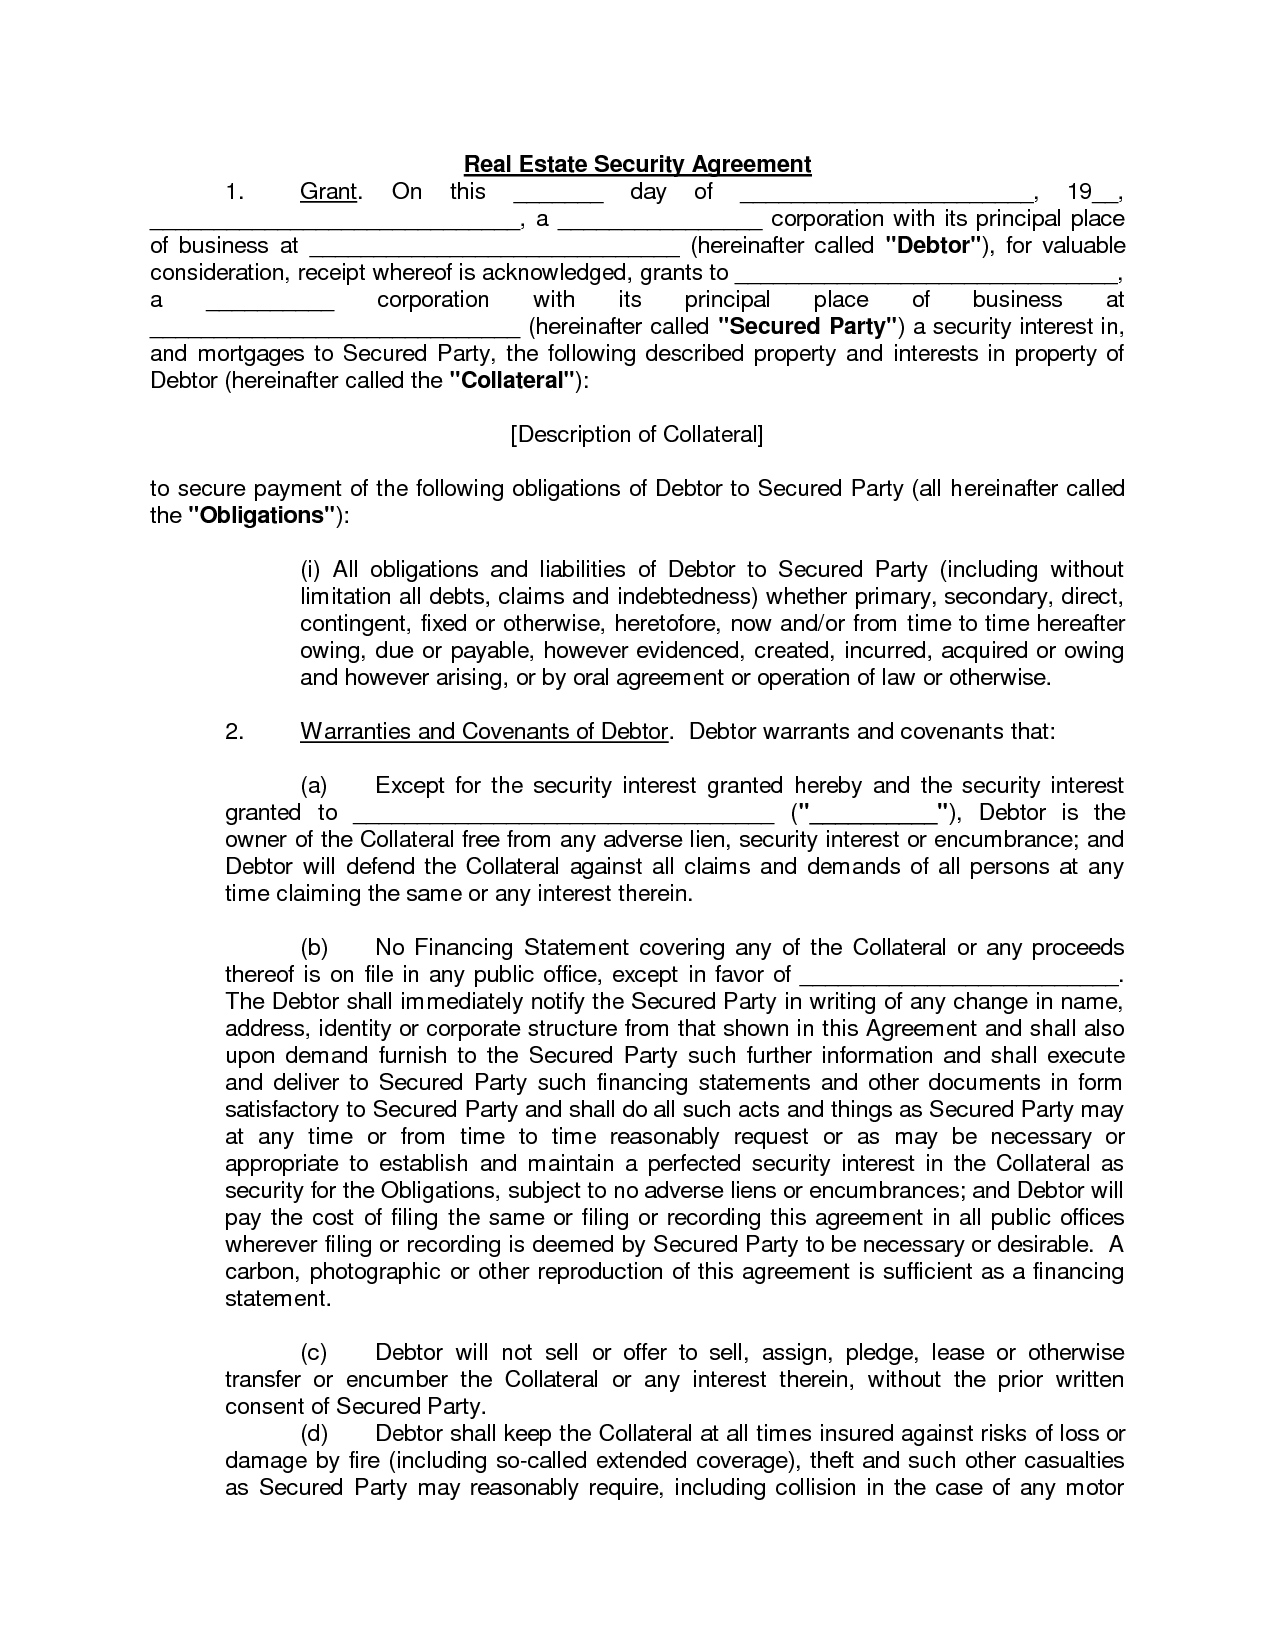 This document is an example of a real estate security agreement A – Security Agreement